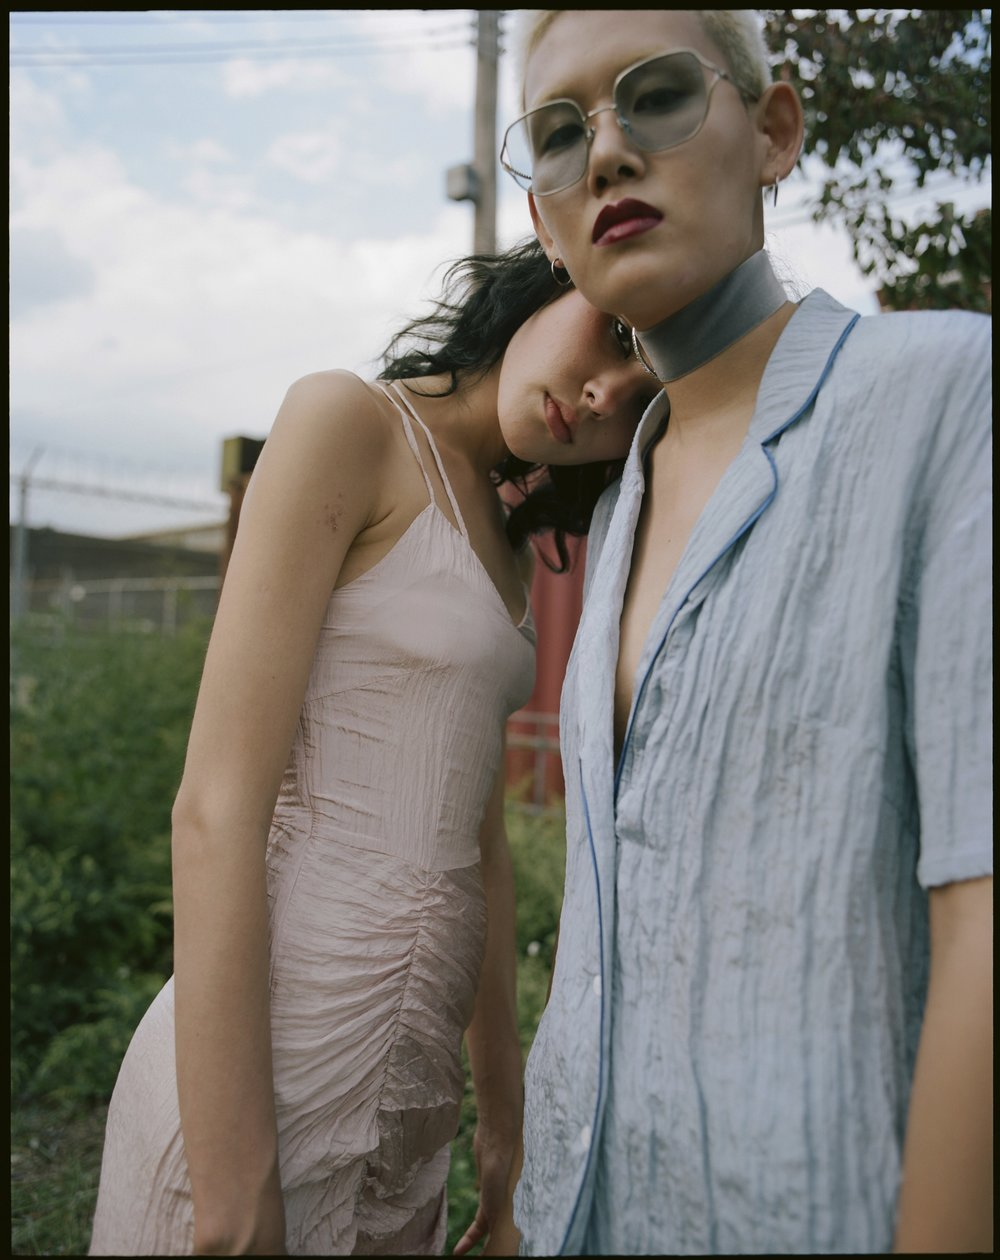 Calvin Luo Brand Images | Zora Sicher | Creative Direction & Styling